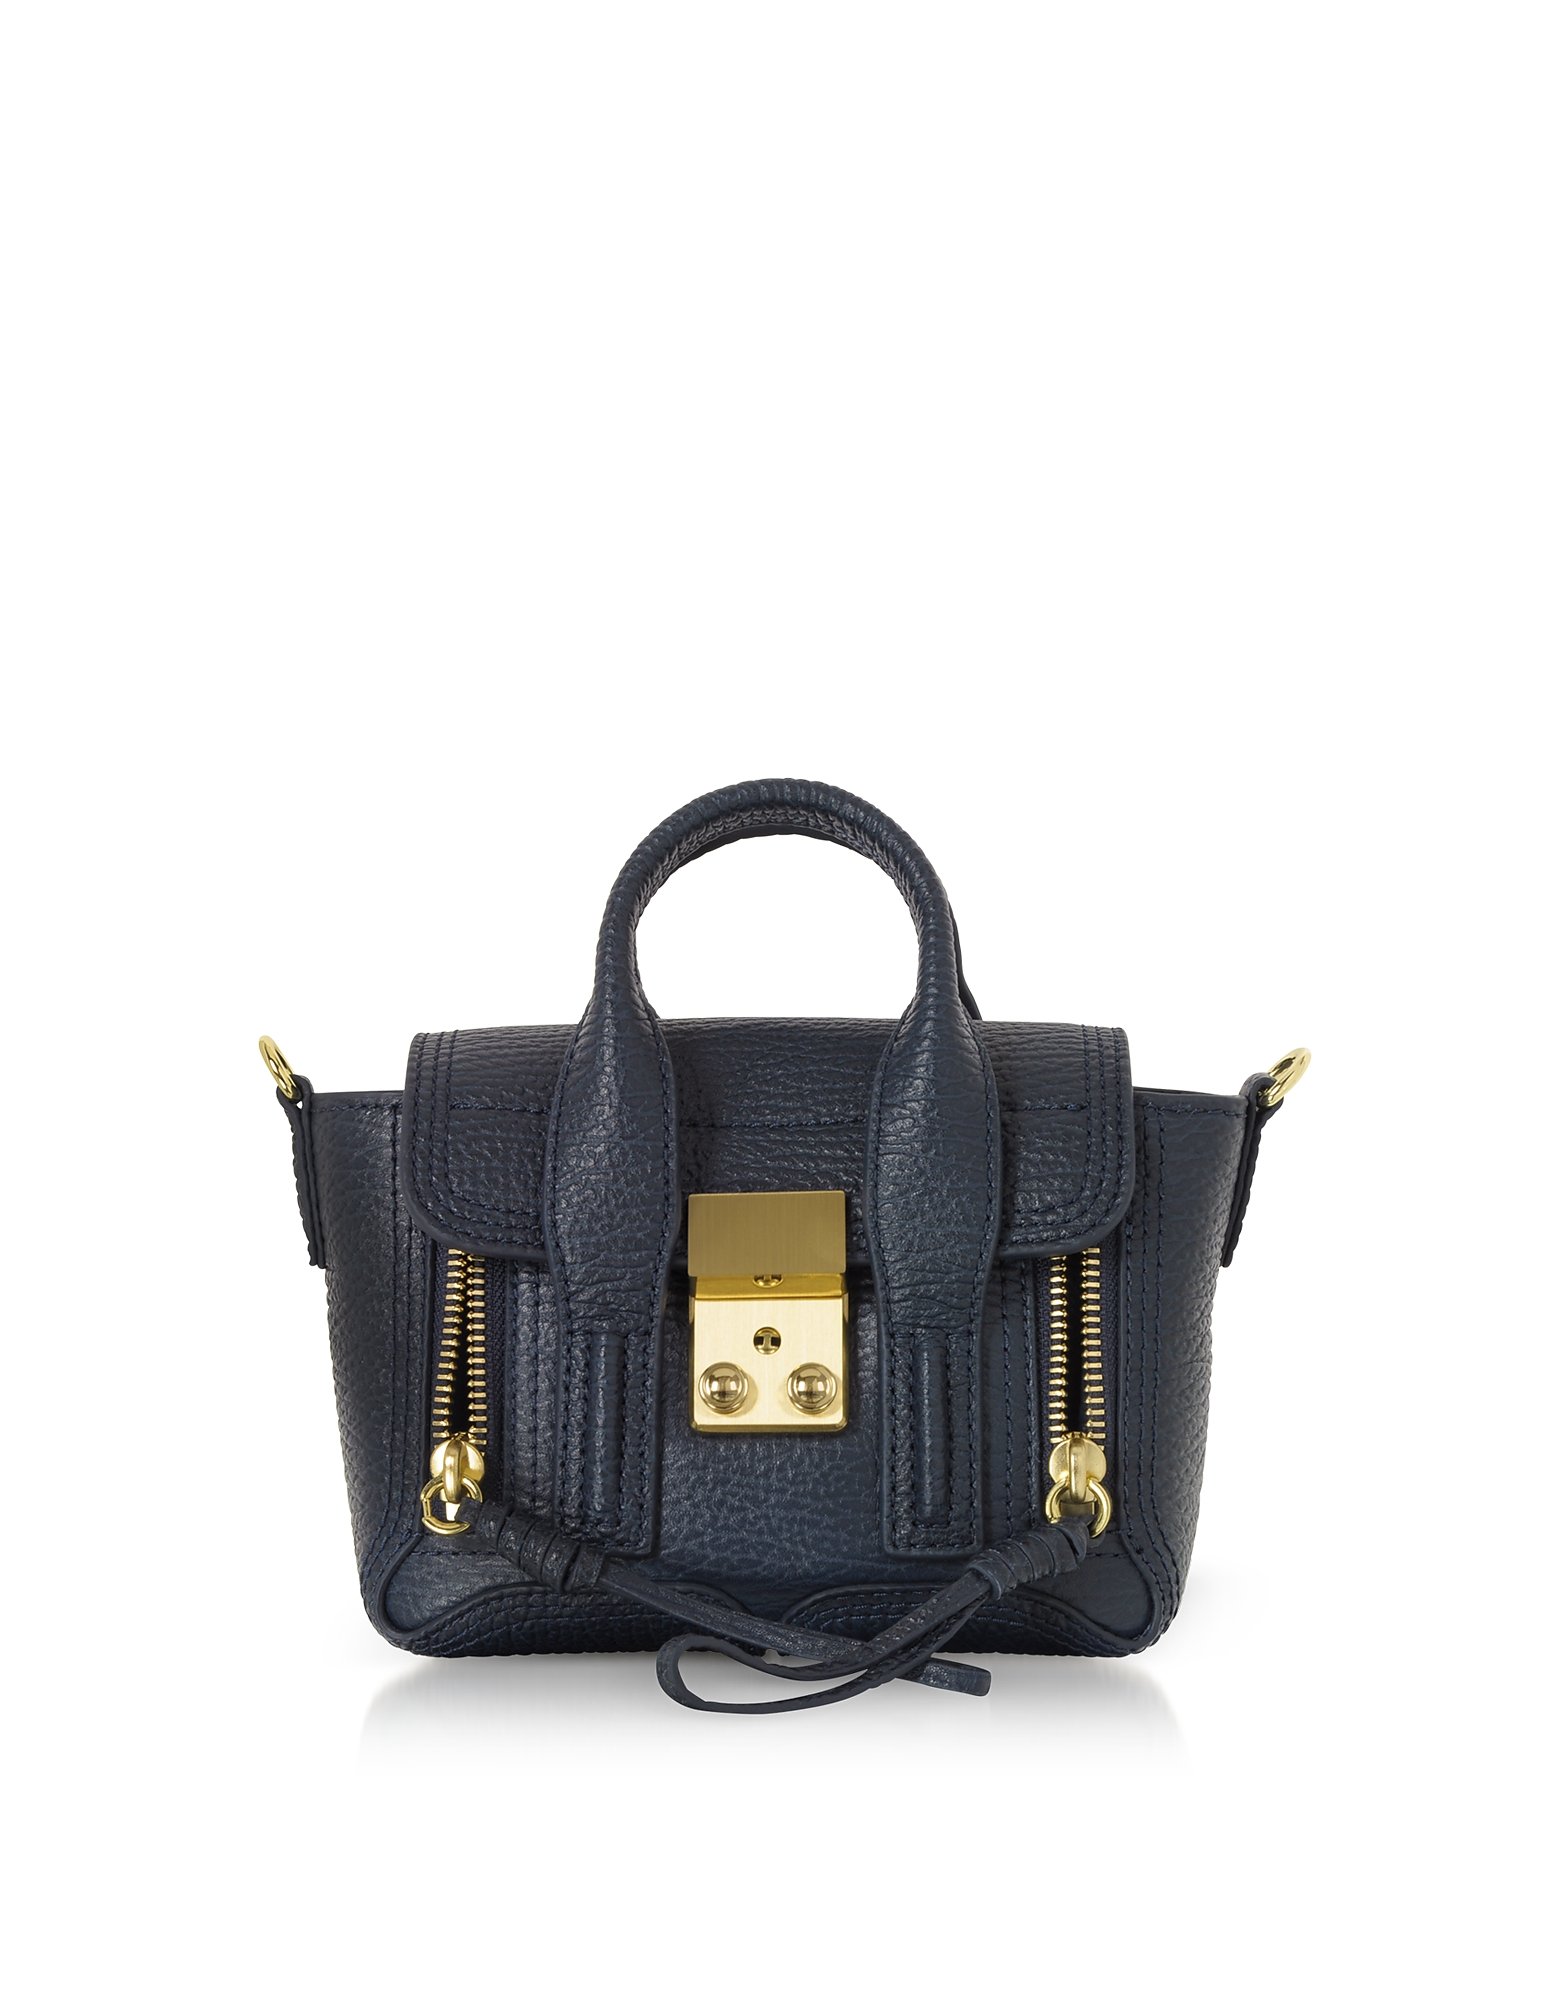 Ink Leather Pashli Nano Satchel Bag